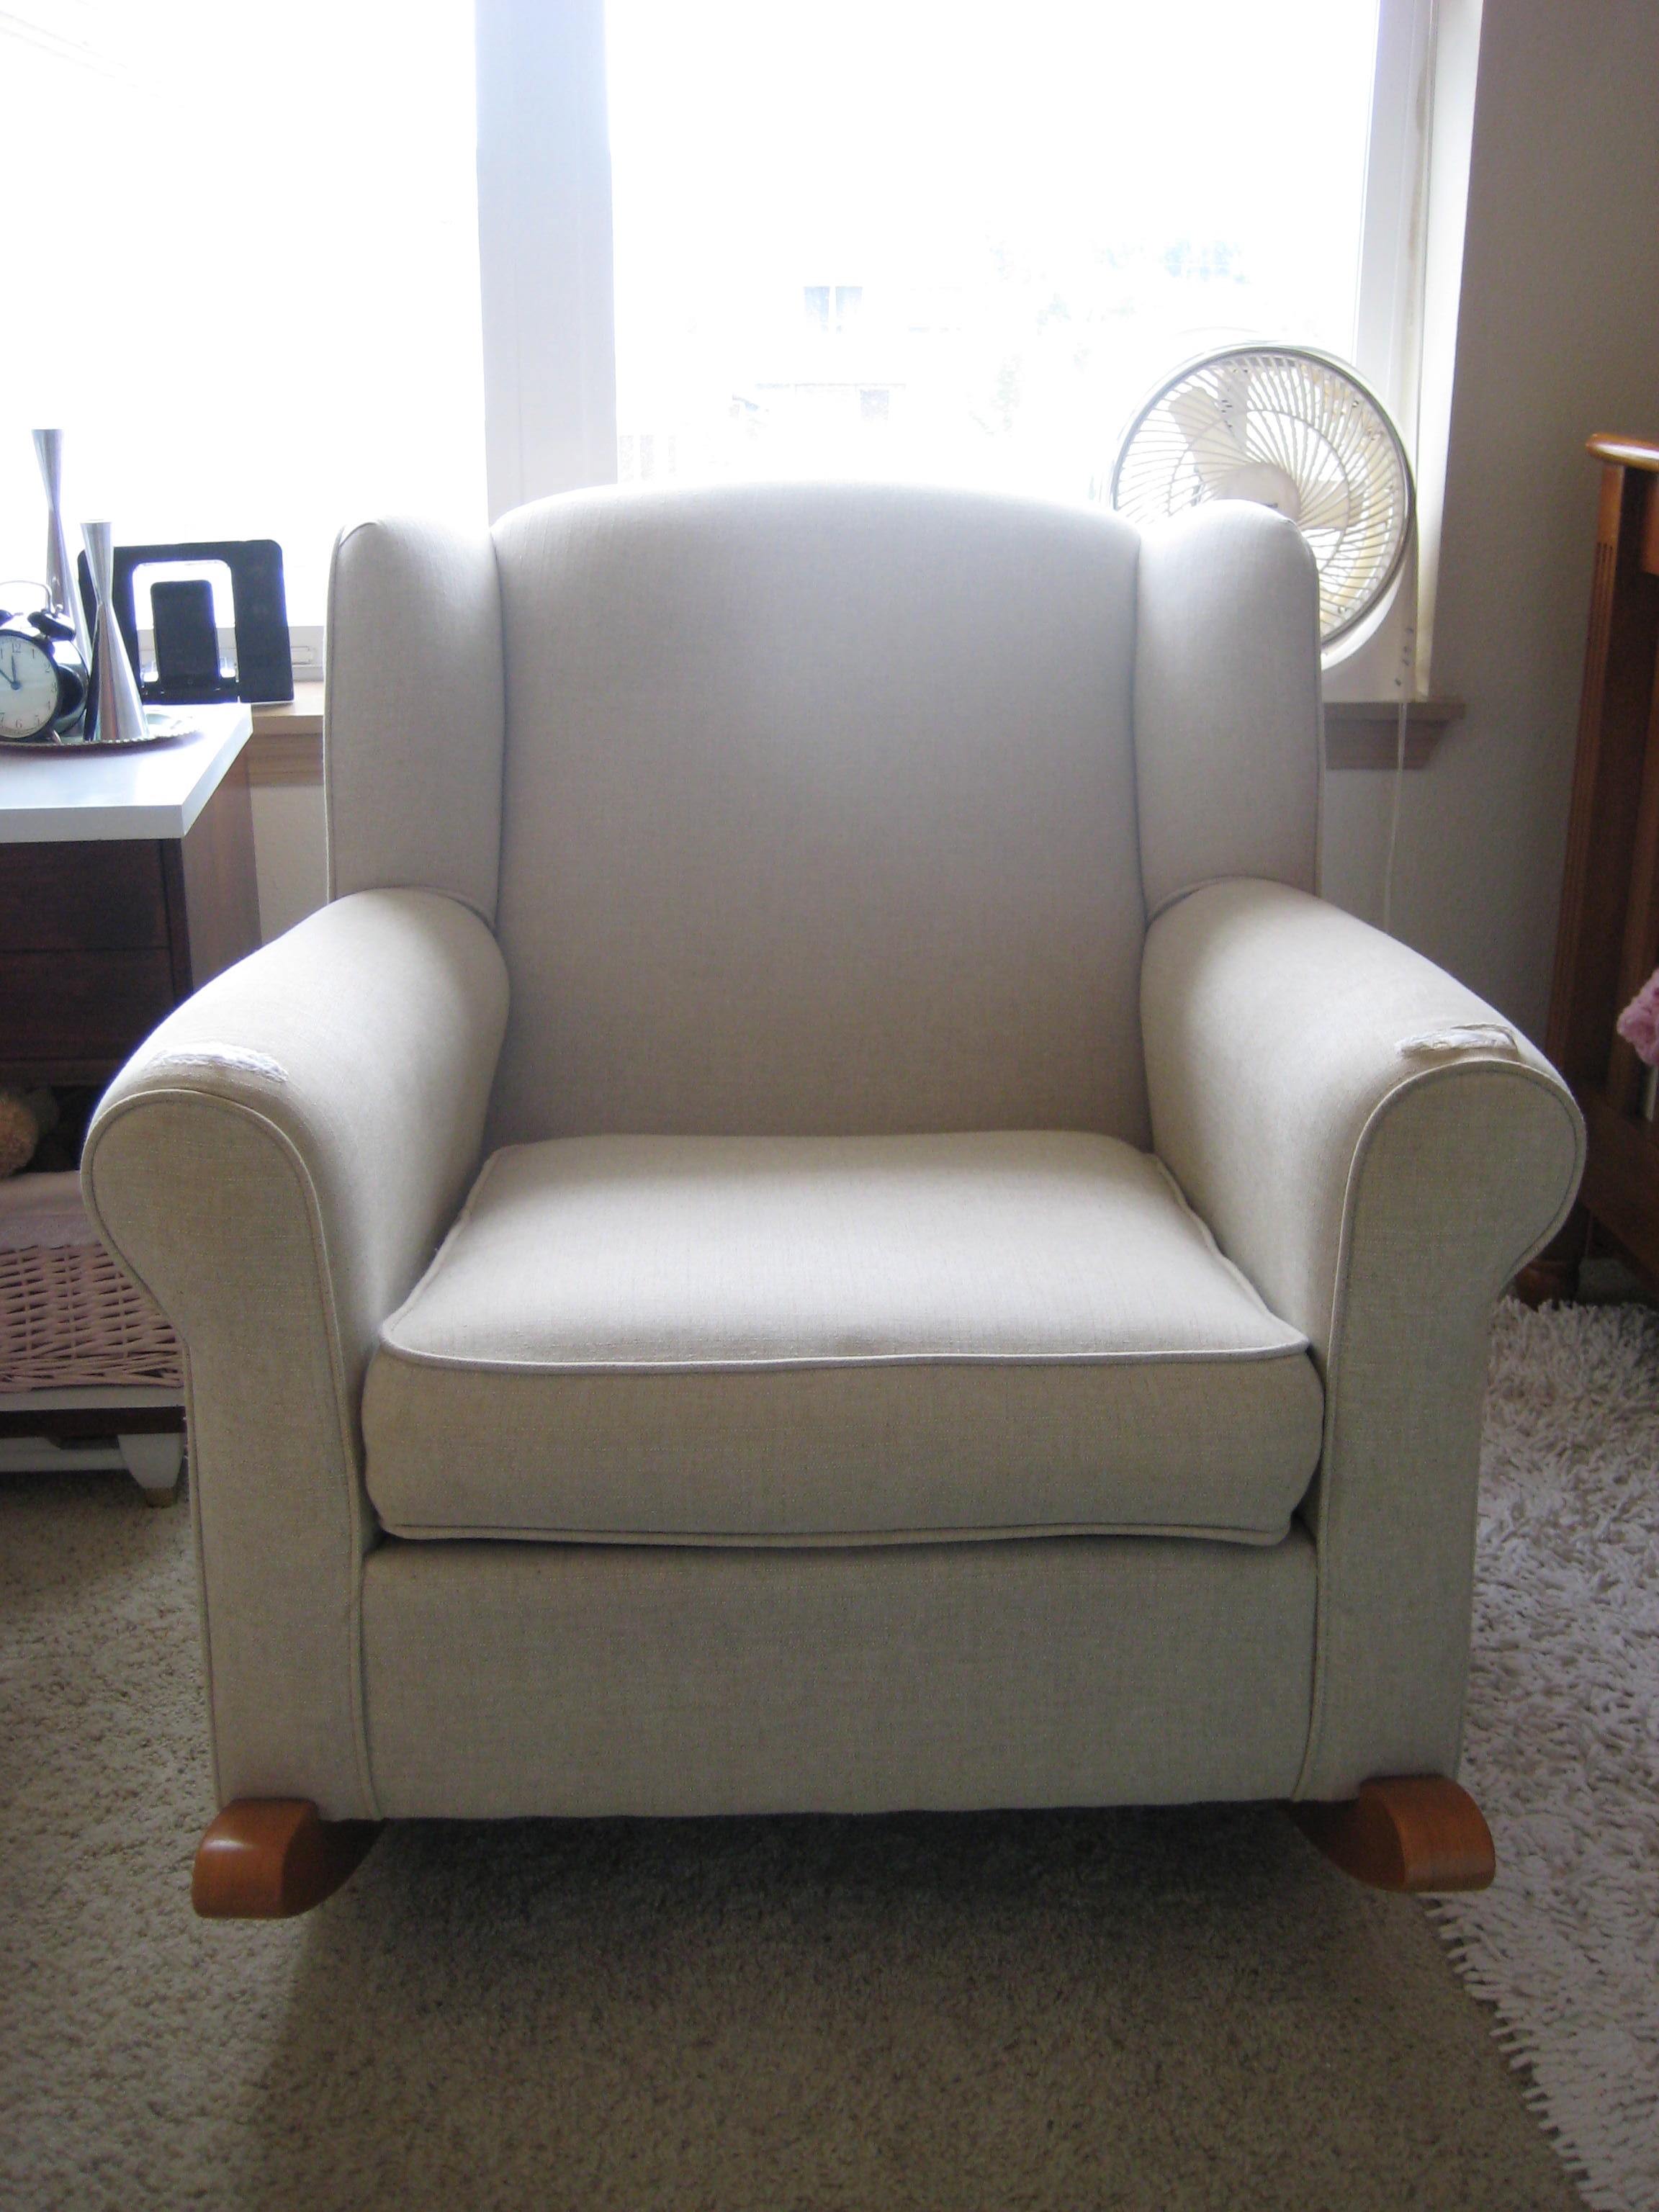 Charmant How To Reupholster A Wingback Rocker Part I